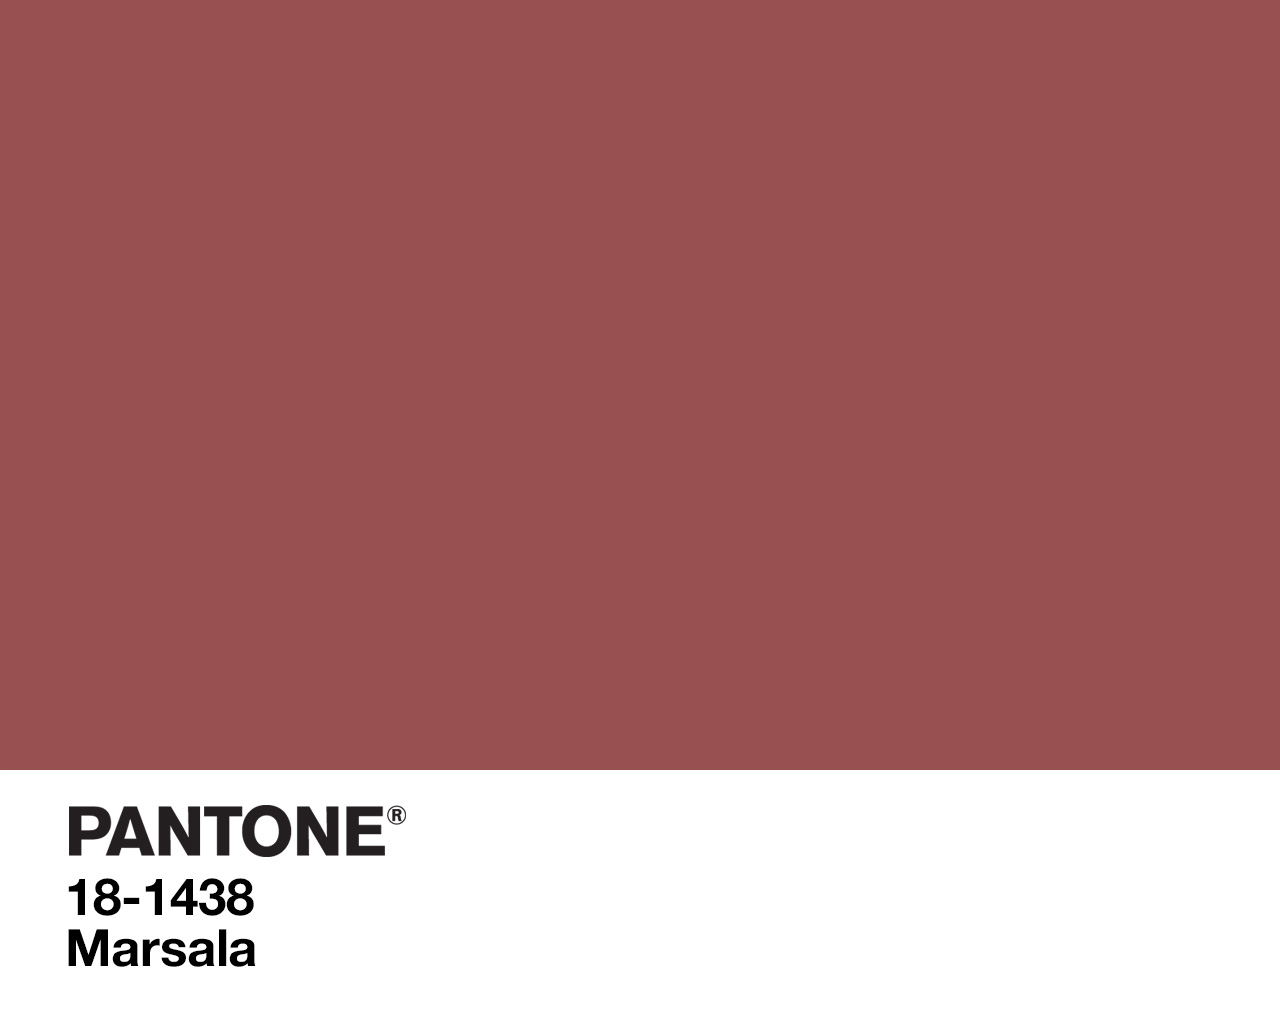 2015 Pantone Color Of The Year